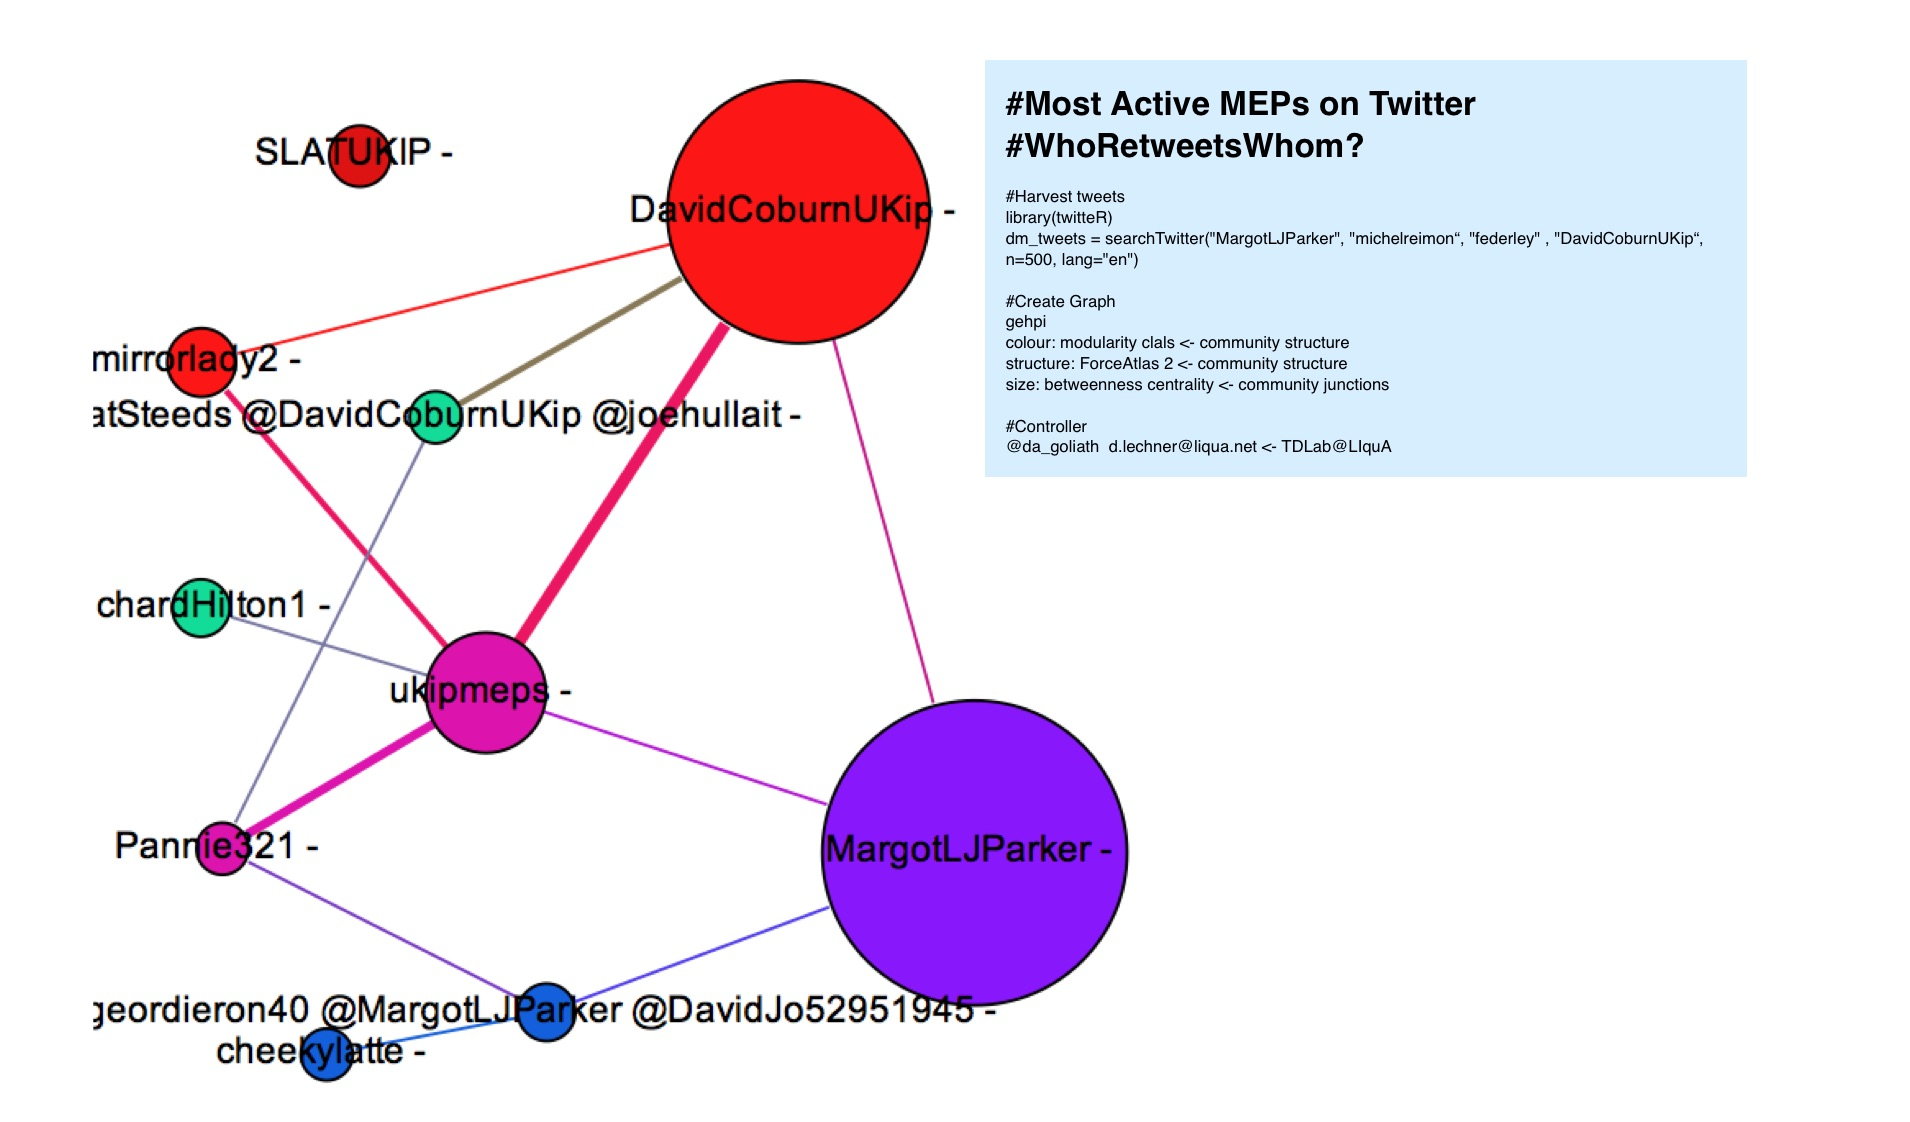 #Most Active MEPs on Twitter